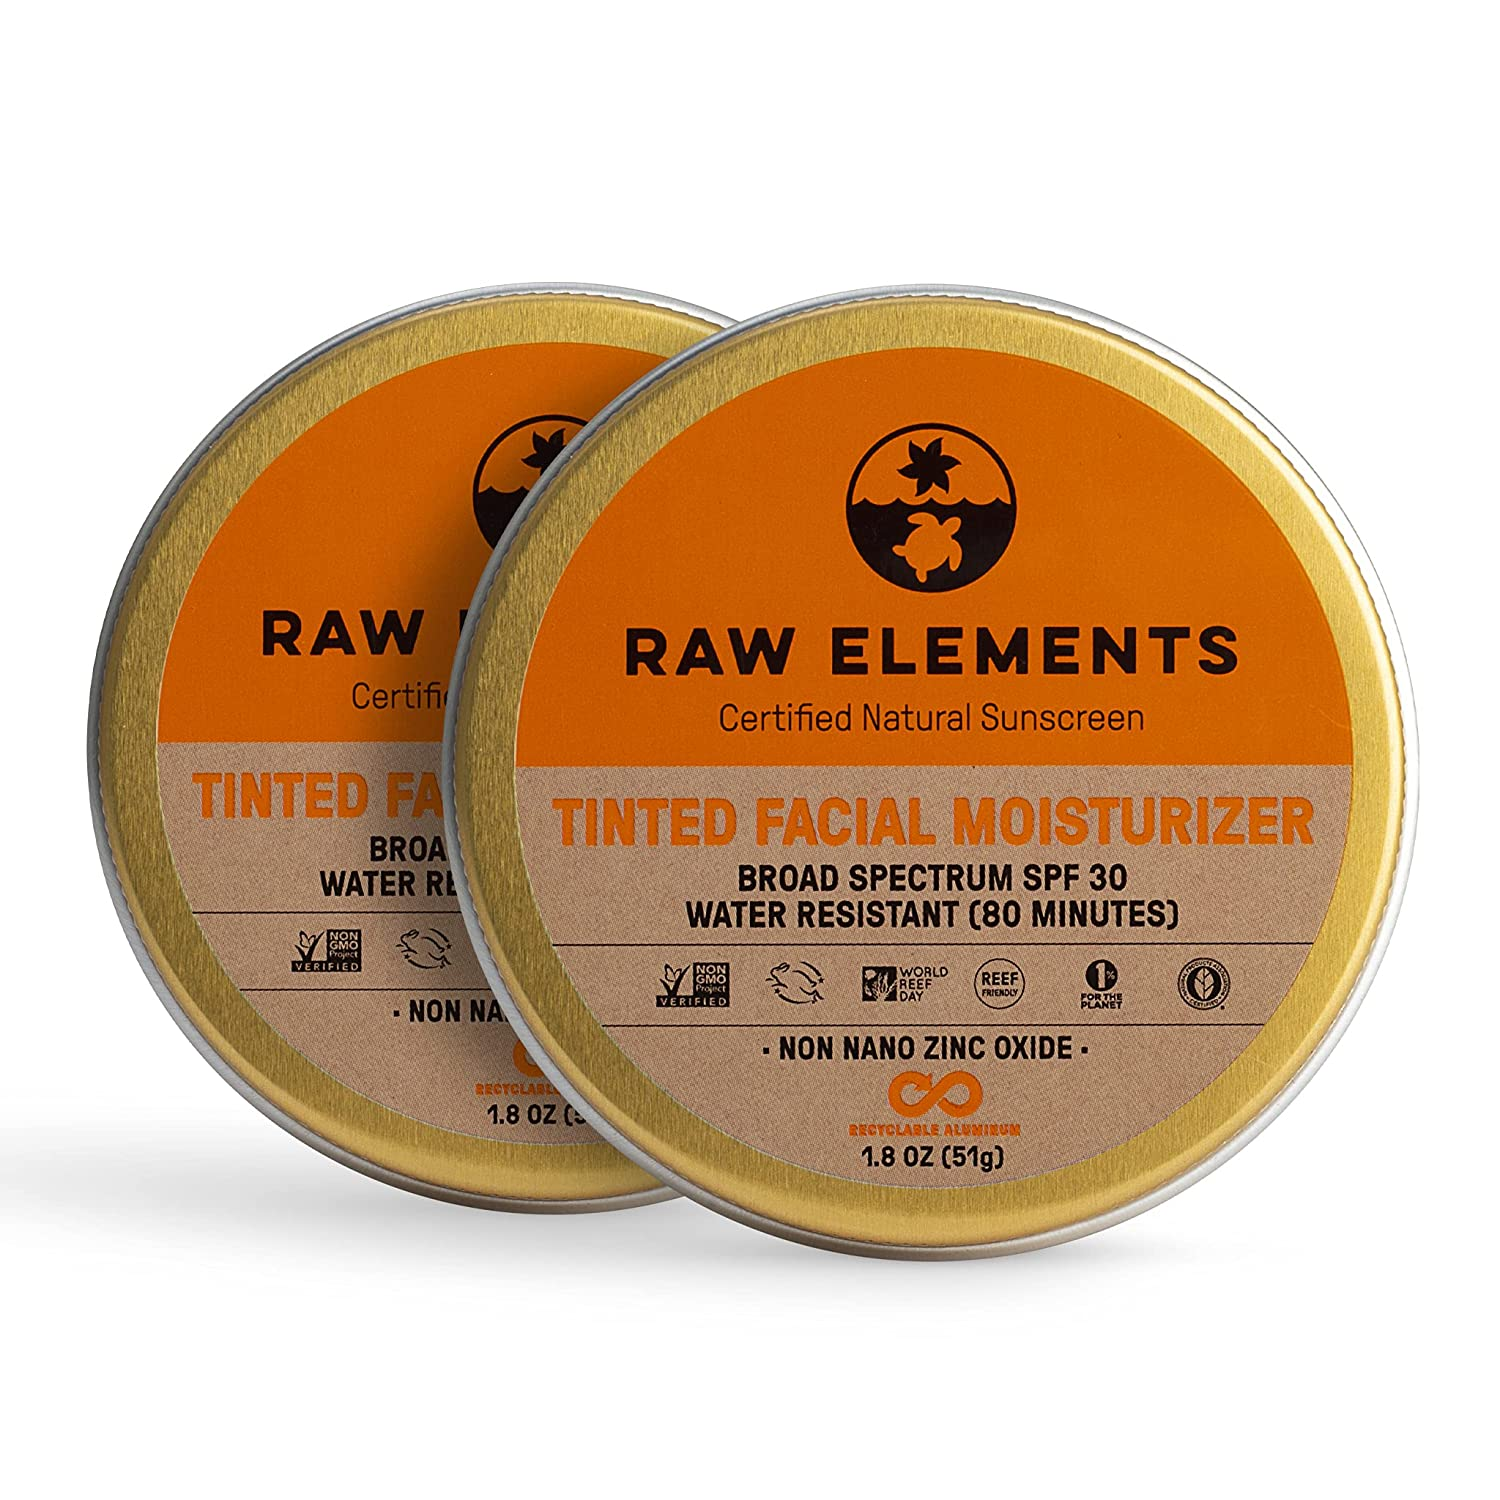 Raw Elements Very popular Tinted Facial Moisturizer Sunscre Popular products Natural Certified